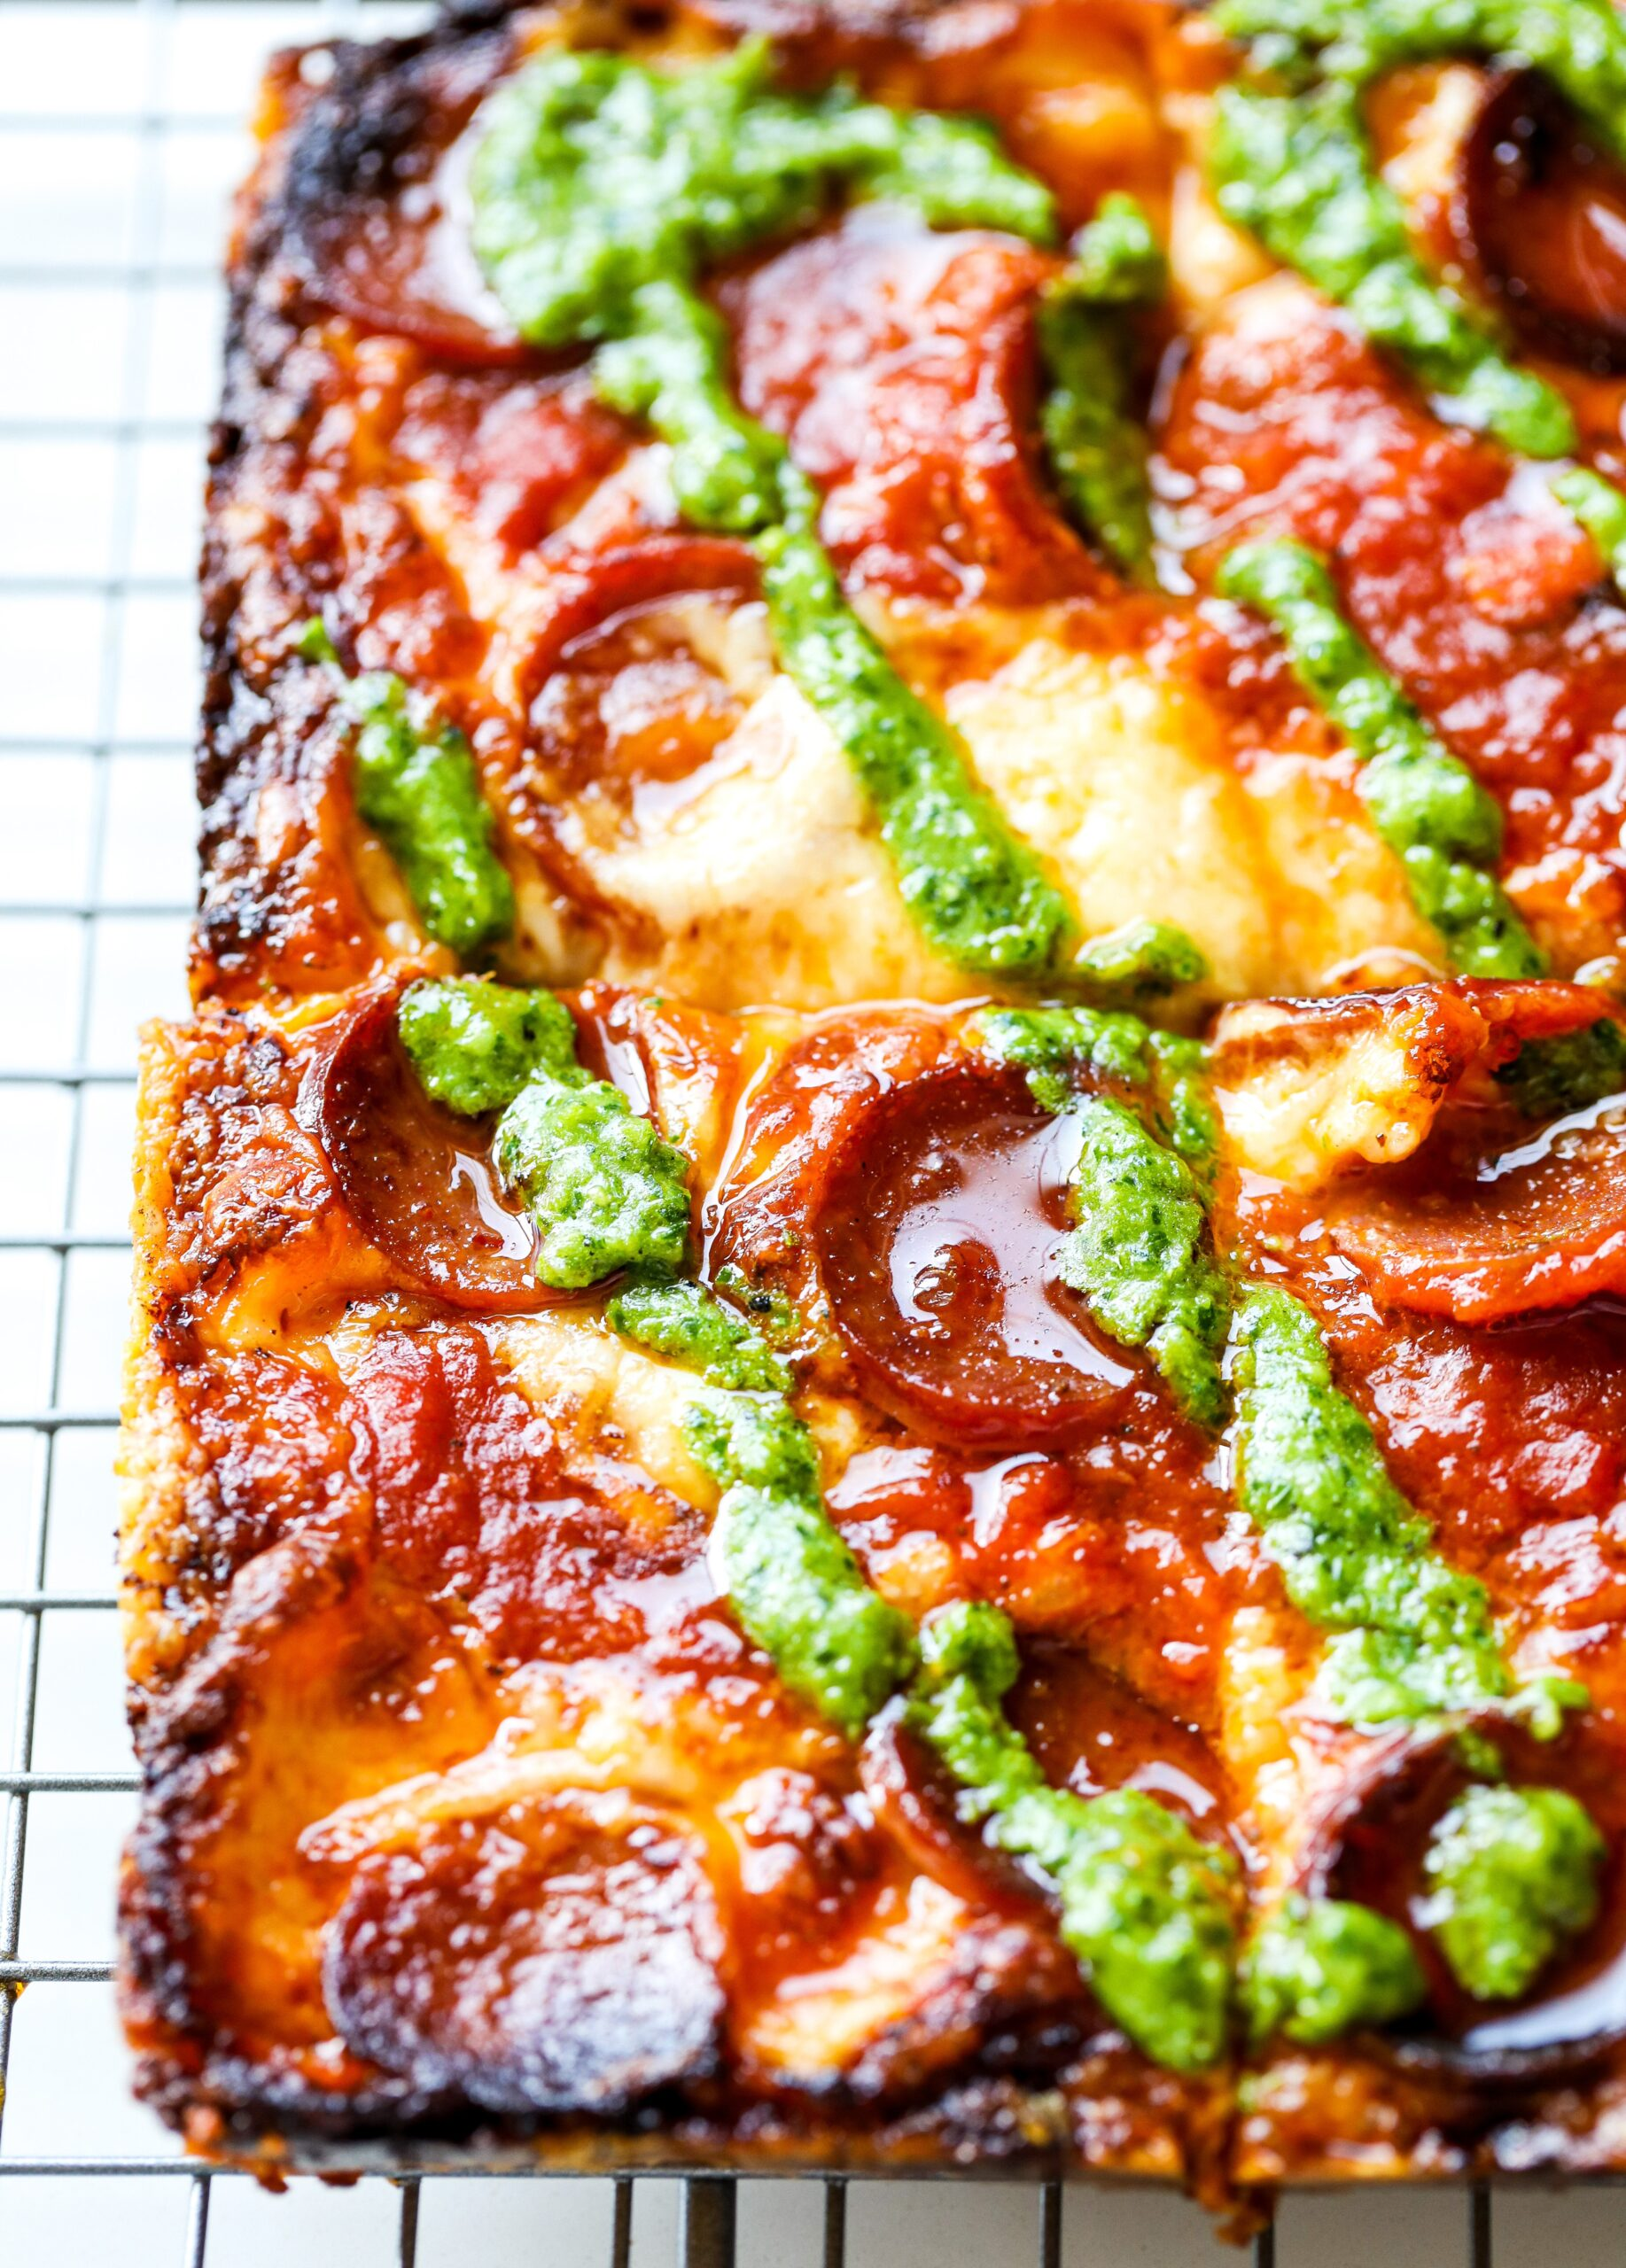 Pepperoni and Jalapeno Pesto Pan Pizza